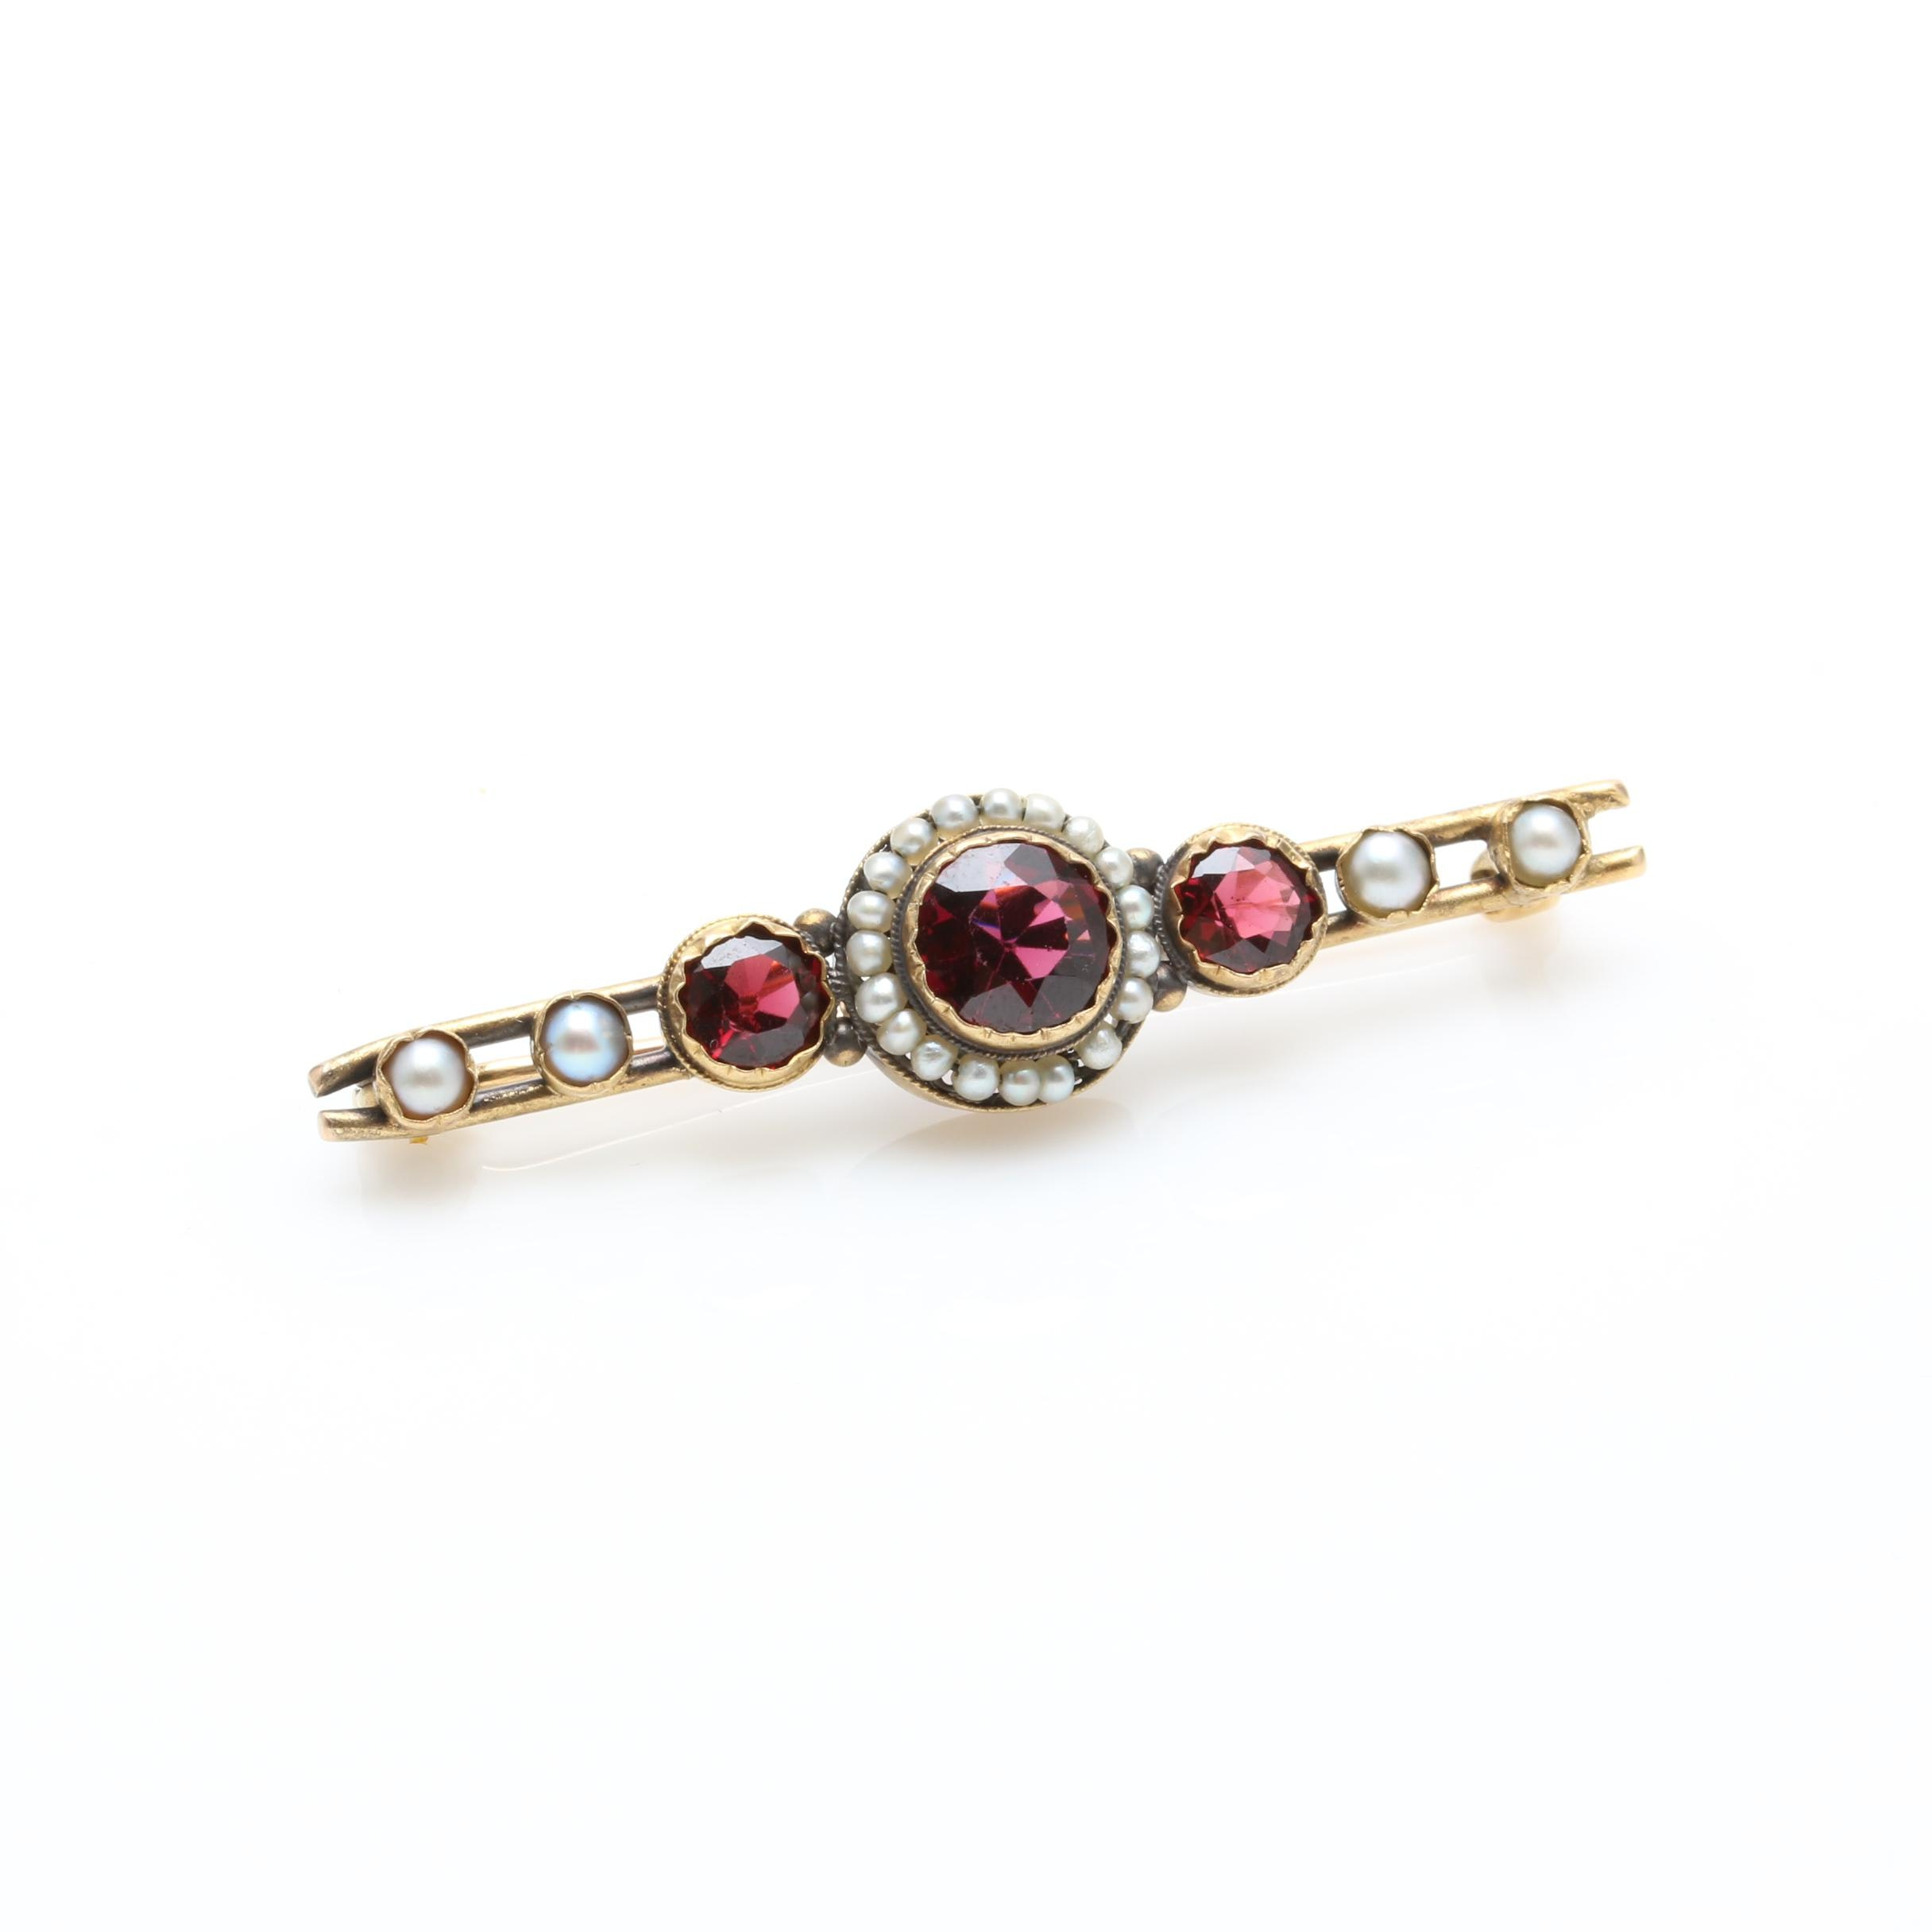 Early 1900s 10K Yellow Gold Garnet and Cultured Pearl Brooch